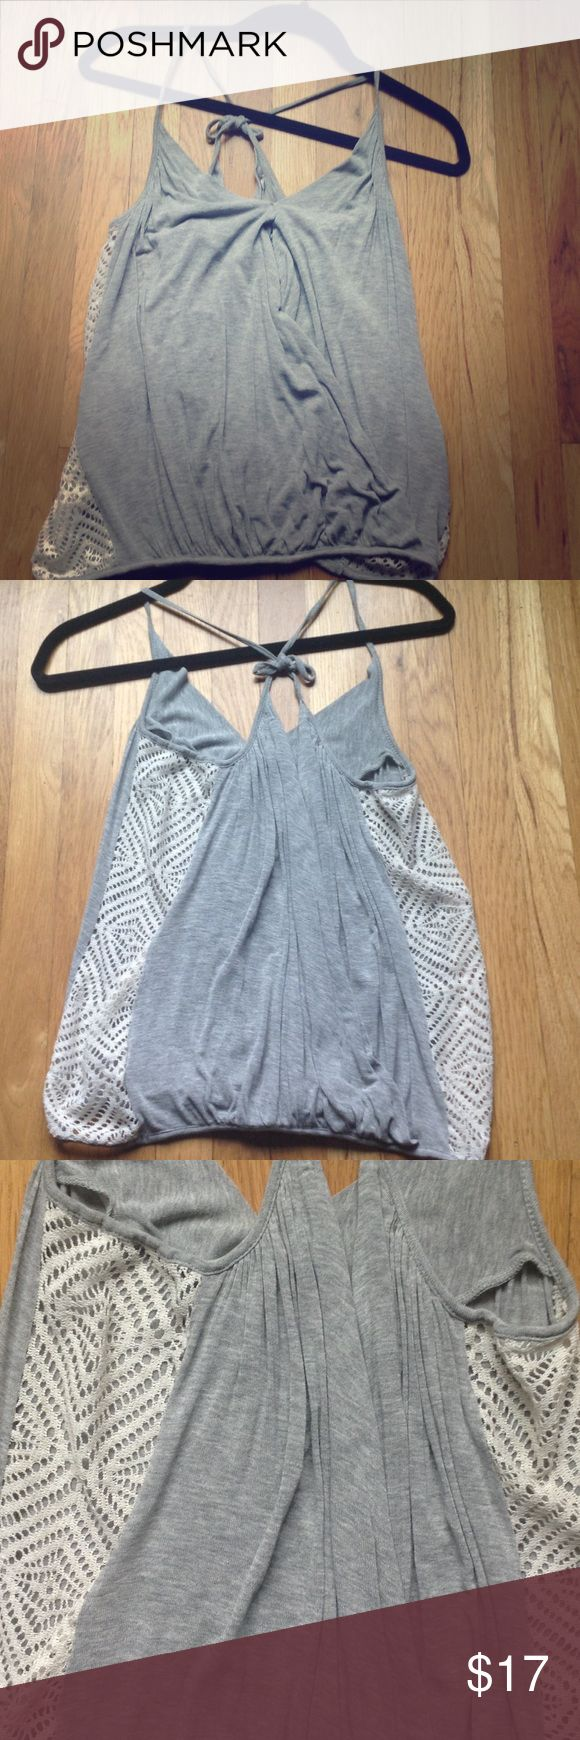 FREE PEOPLE GREY CAMI TOP Lovely Free People grey Cami top. It has a beautiful side detail that looks mesh and can be worn very beautifully with shorts or jeans Free People Tops Camisoles